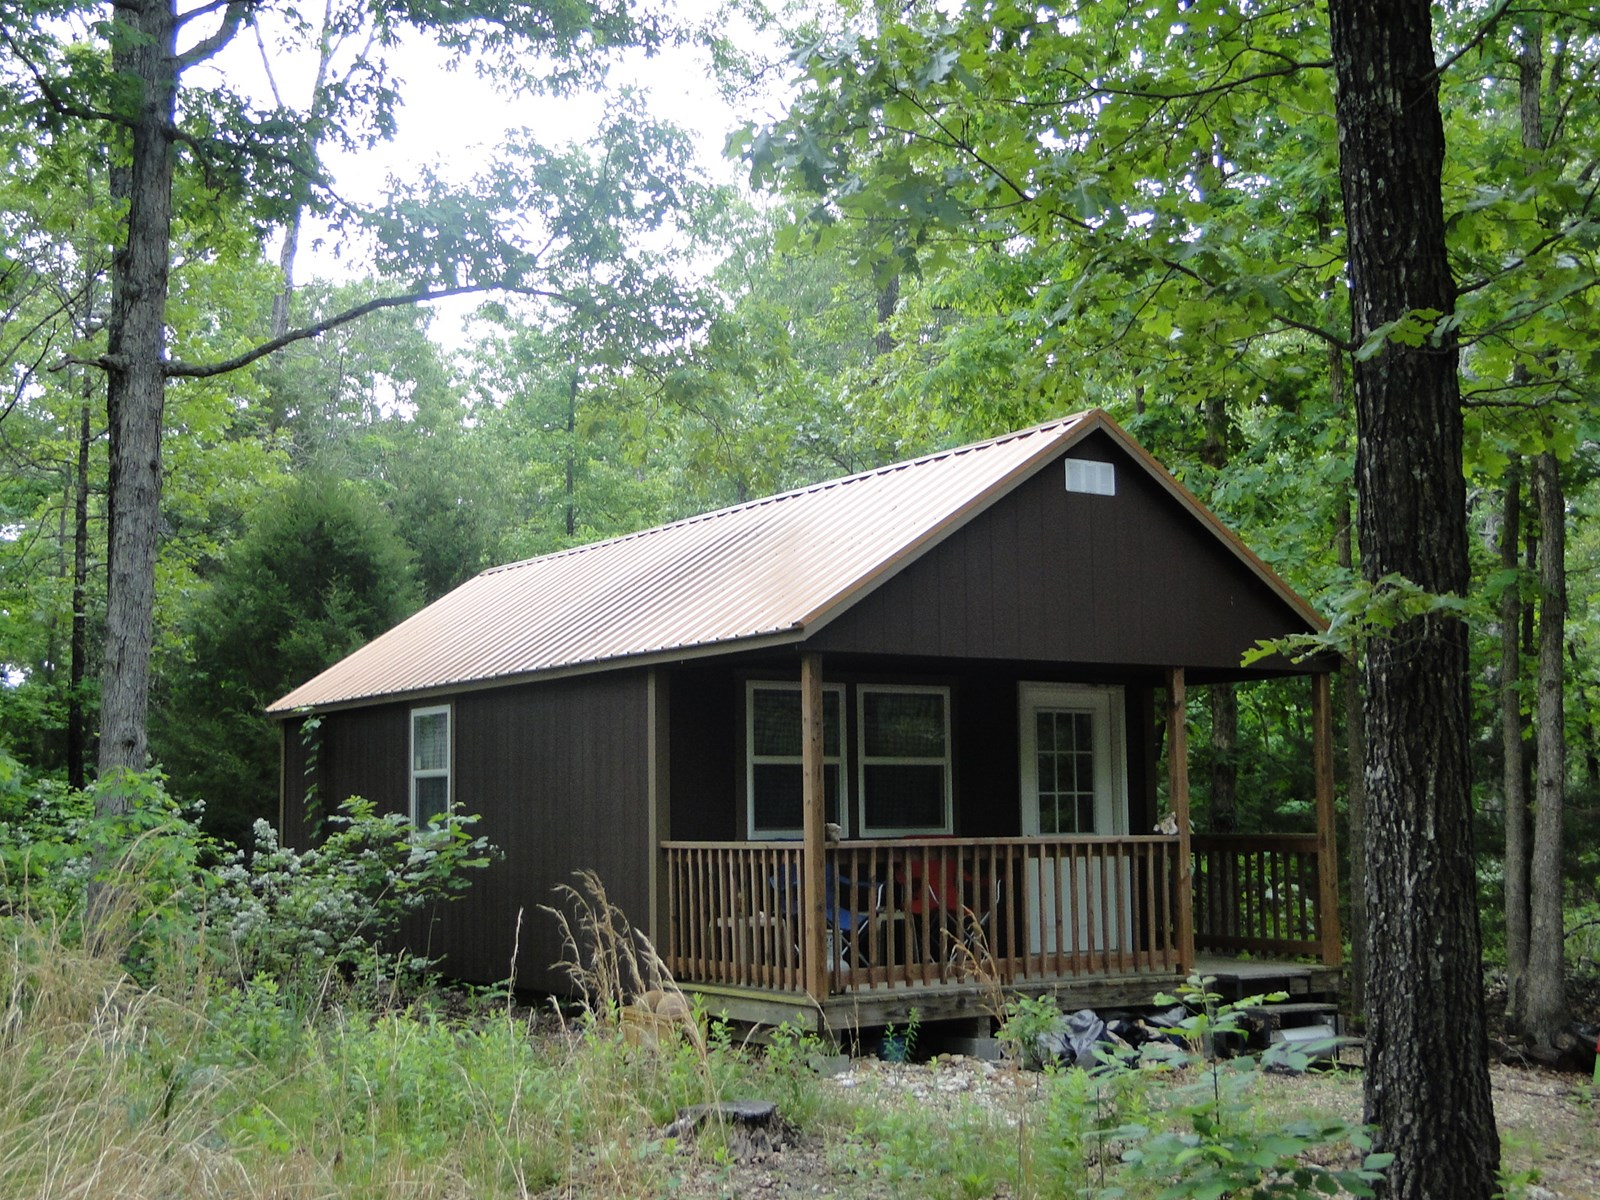 Ava, Mo for sale- Cabin with land